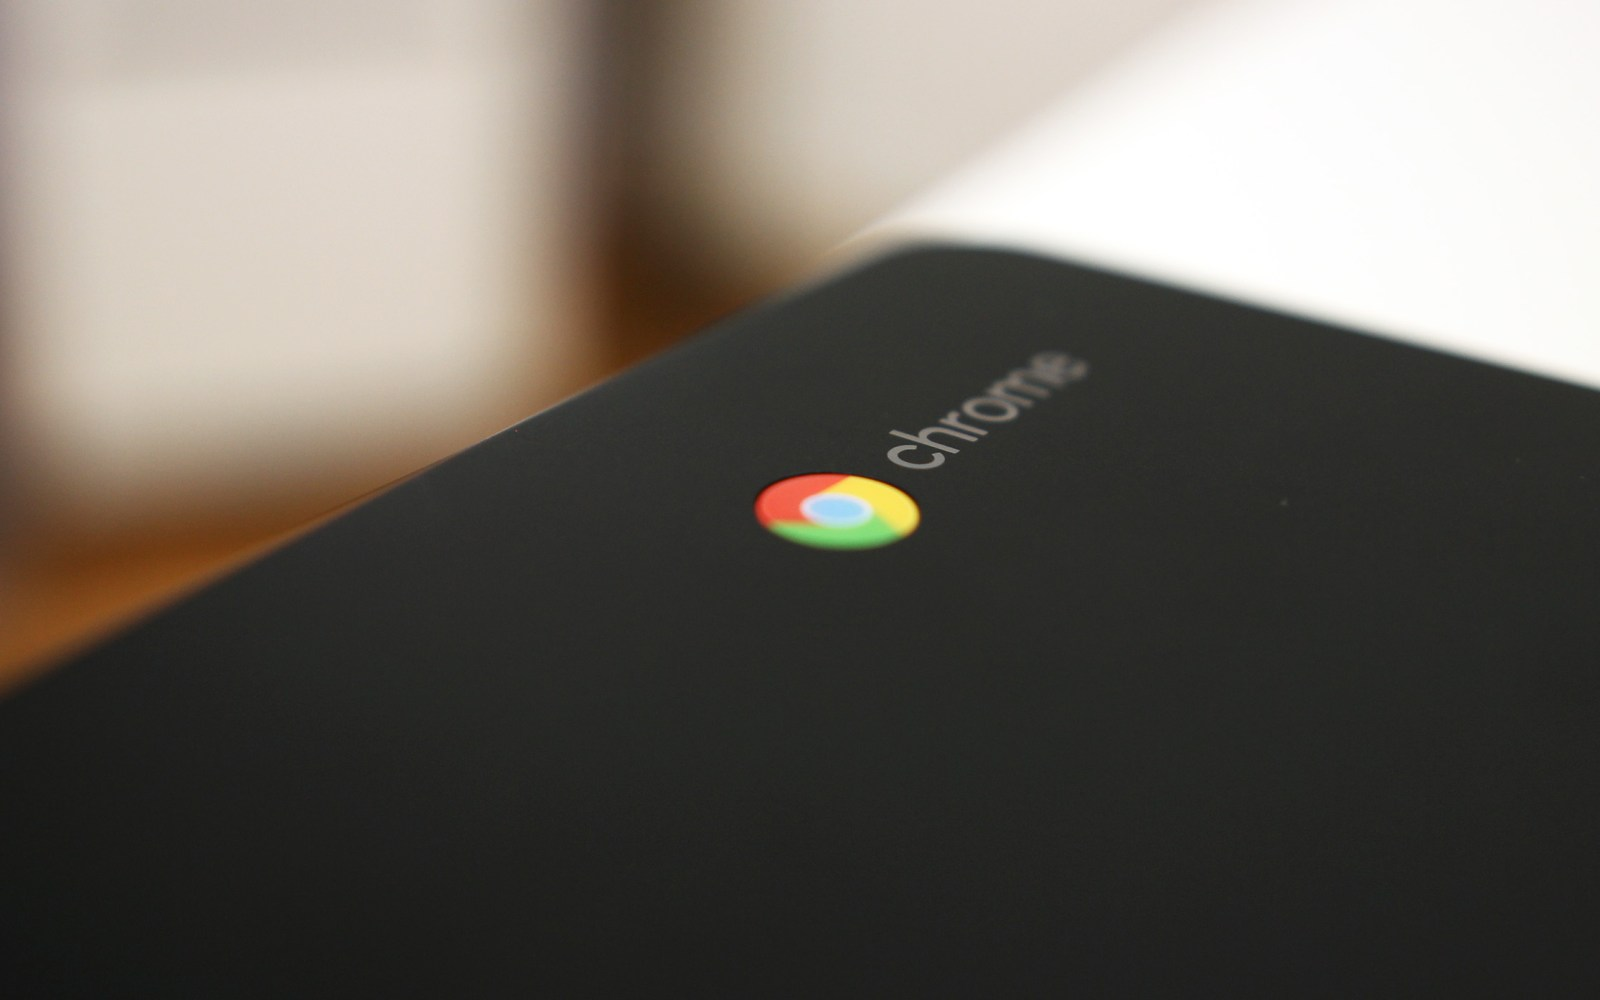 New evidence points to upcoming fingerprint sensor support in Chrome OS